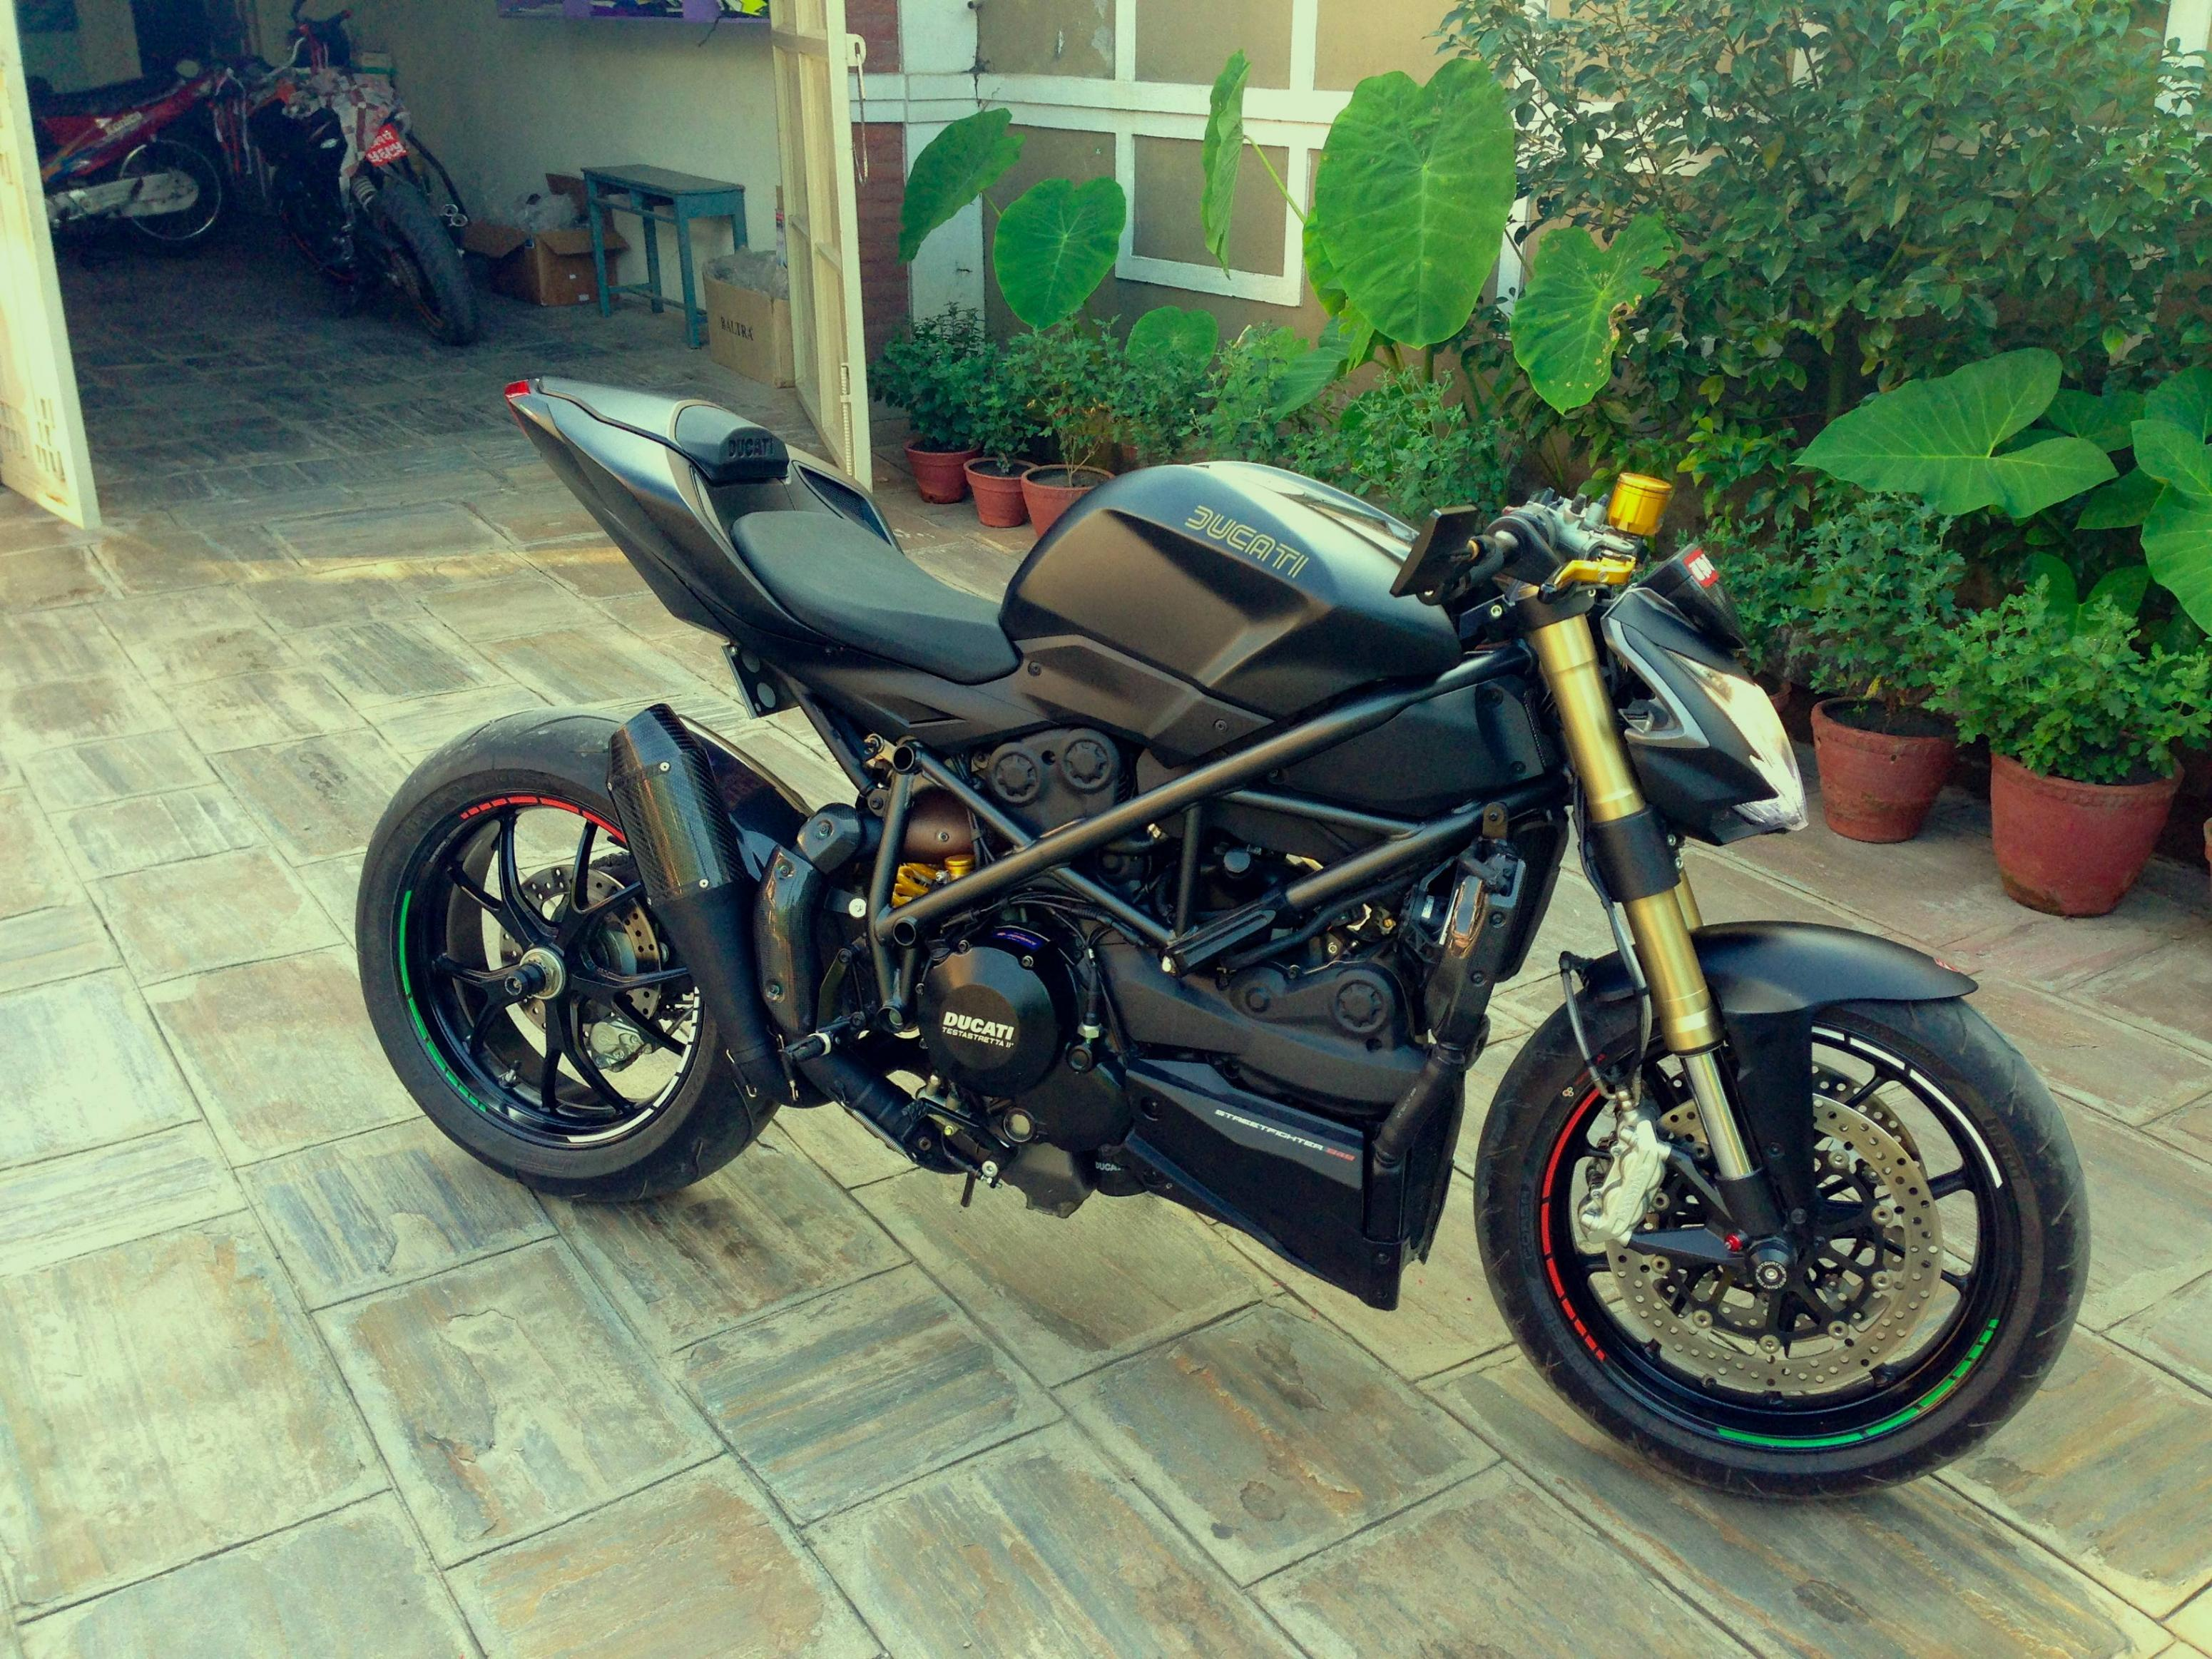 shift-tech exhaust - page 13 - ducati.ms - the ultimate ducati forum